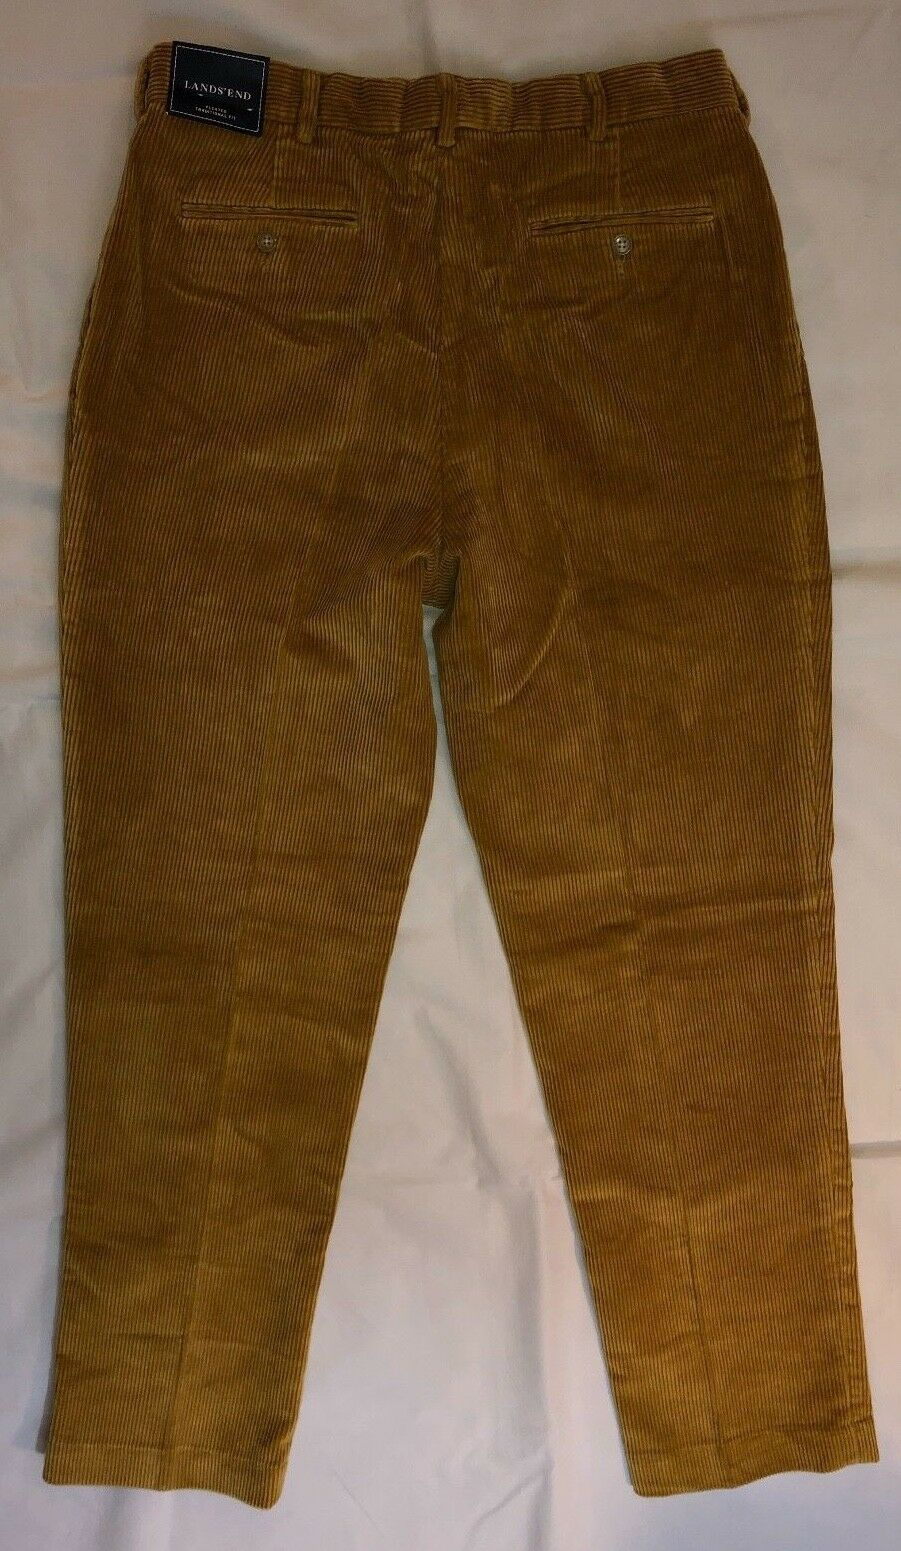 Lands' End Men's Traditional Fit Brown Corduroy Pants 34 X 33 New with Tags